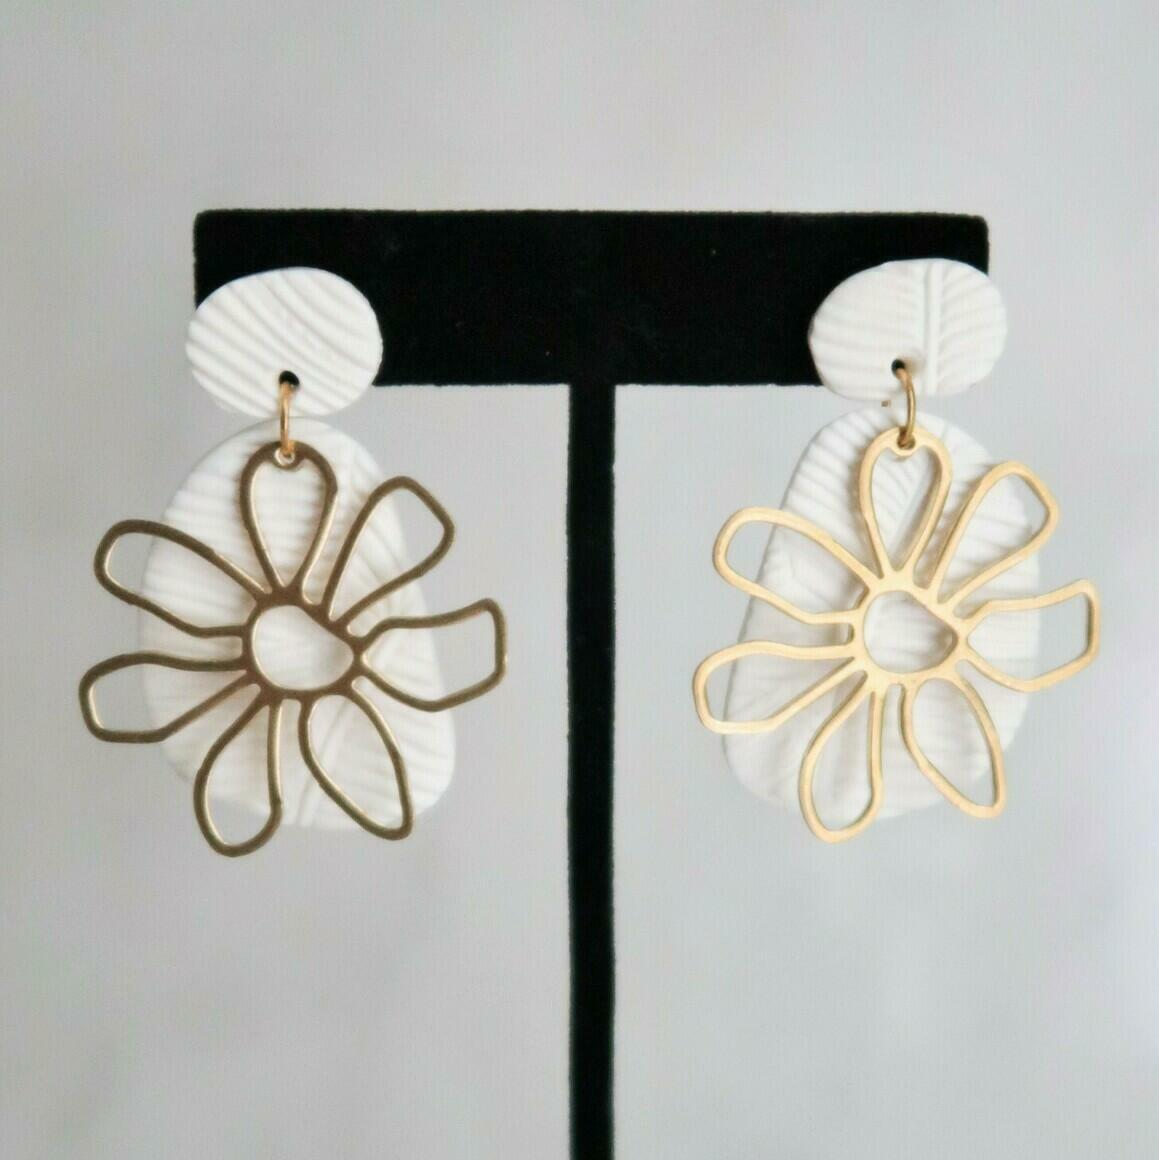 Sunny Dais with Flower - White | Trada Marketplace